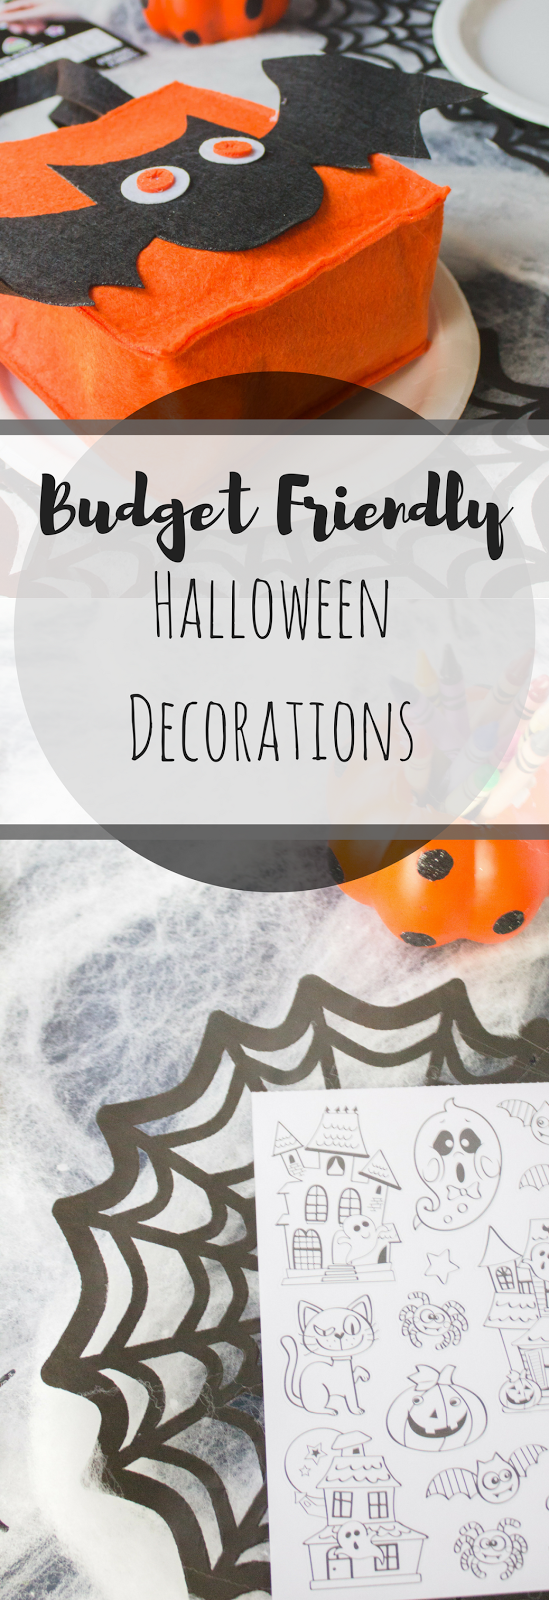 Halloween Decorations, Walmart Holiday Decorations, Holiday Decorations, Place Setting, Kids table place setting, Budget decorations, Holidays at Walmart, Walmart decor